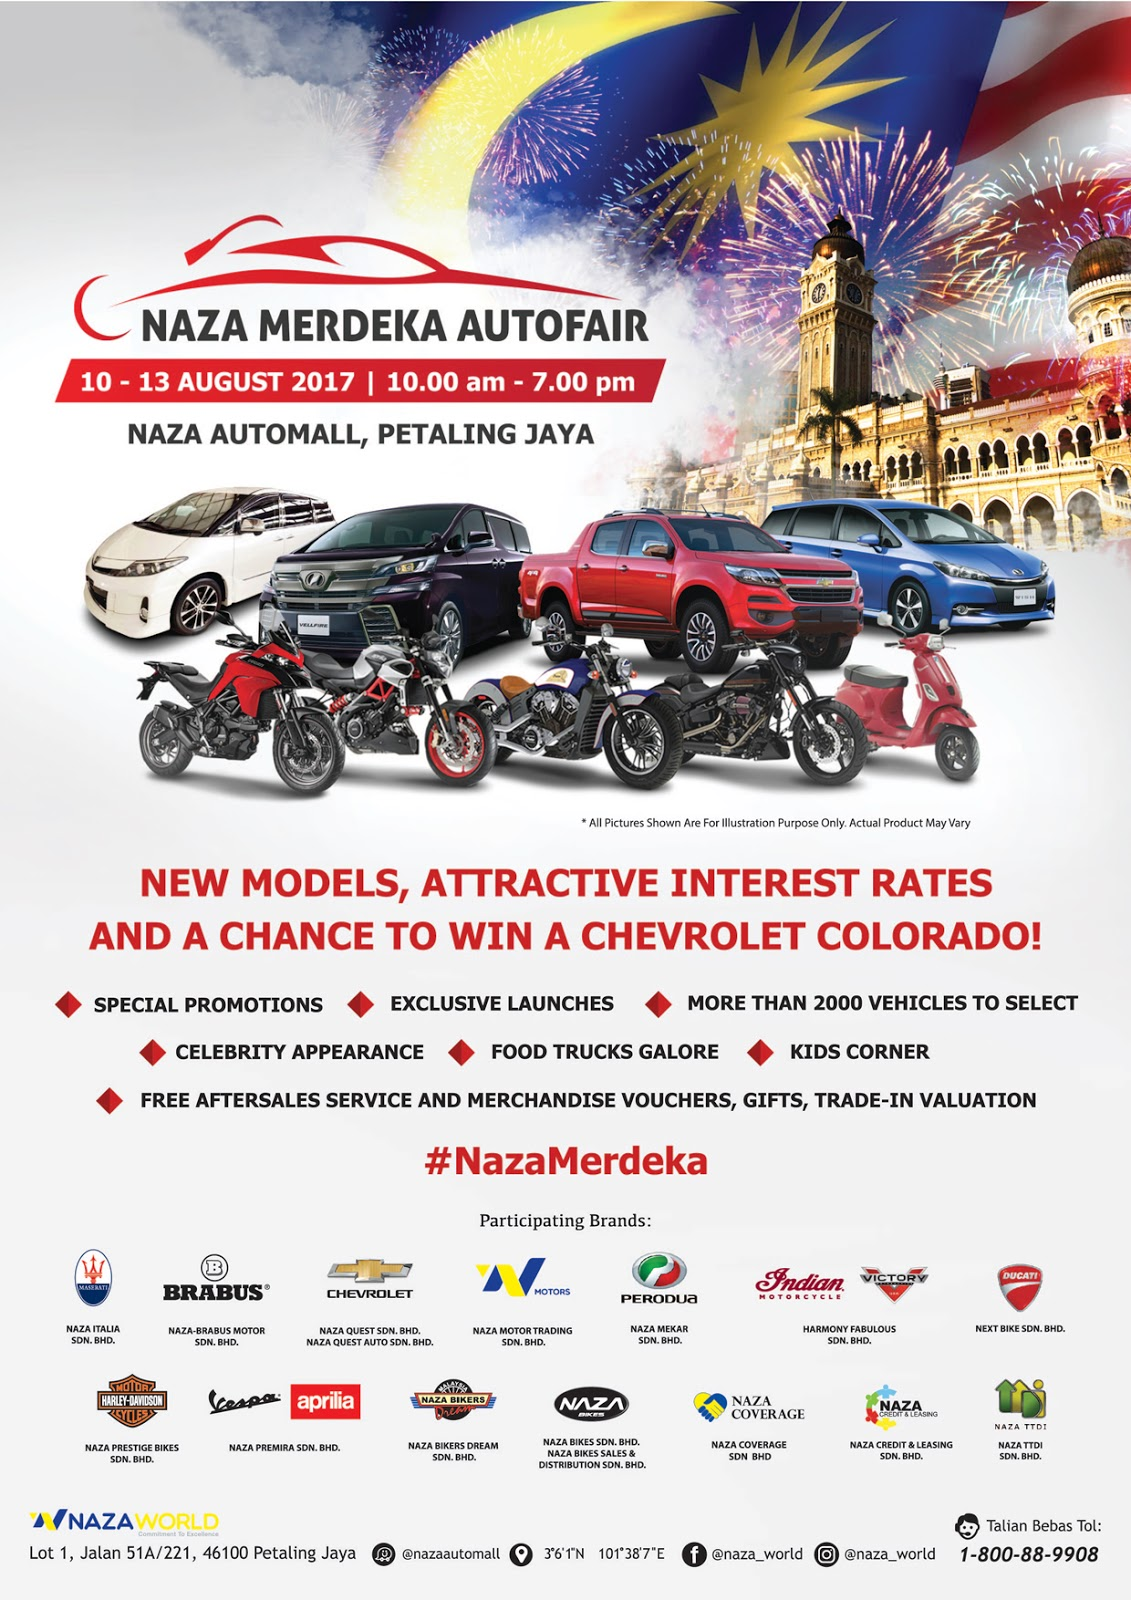 Attractive deals are coming to town at the upcoming naza merdeka autofair 2017 to be held on 10th to 13th august 2017 the auto fair is held in conjunction